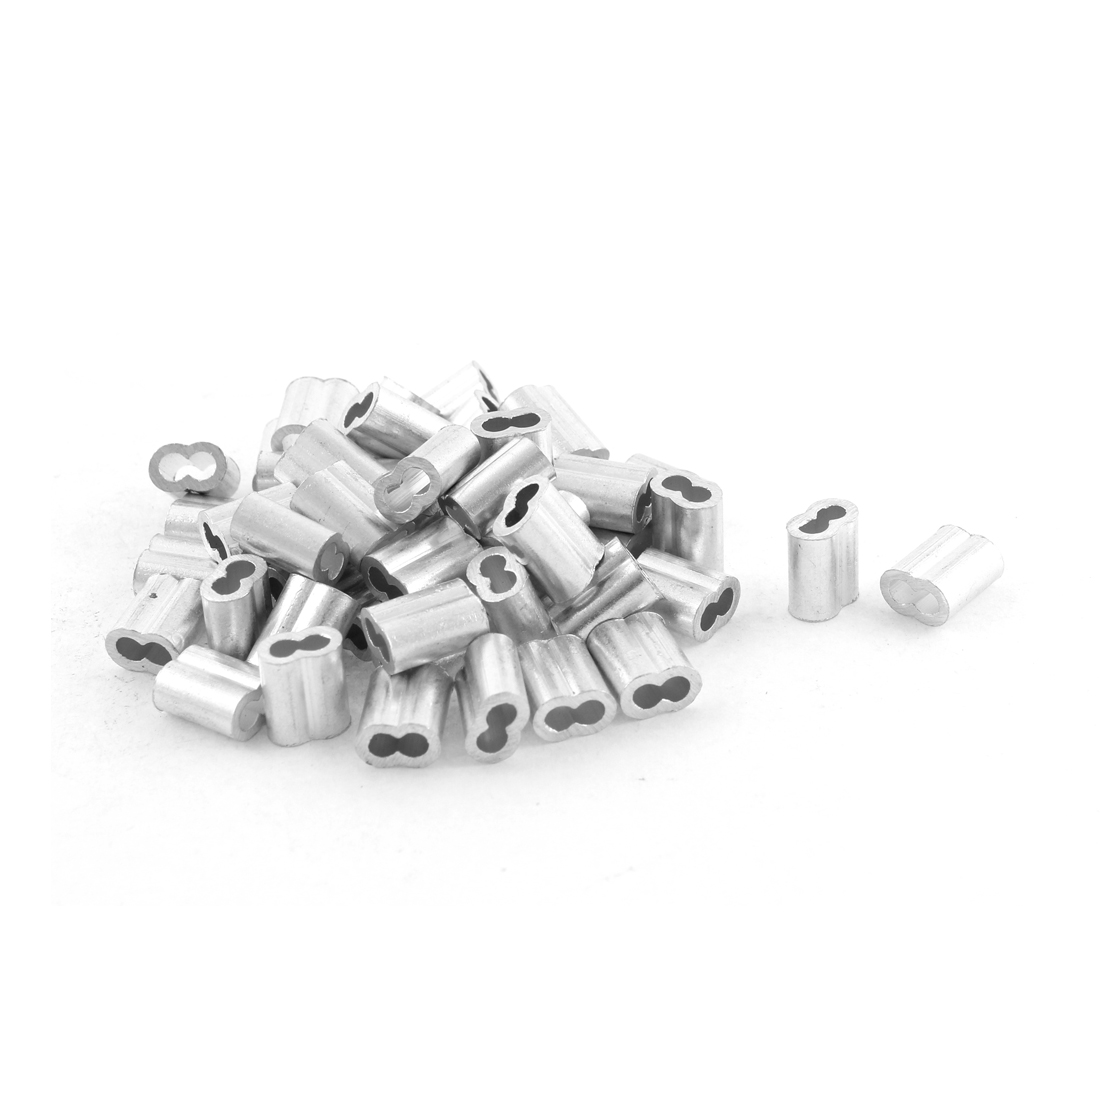 50pcs Silver Tone Aluminum Sleeve for 2mm Steel Wire Rope Swage Clip